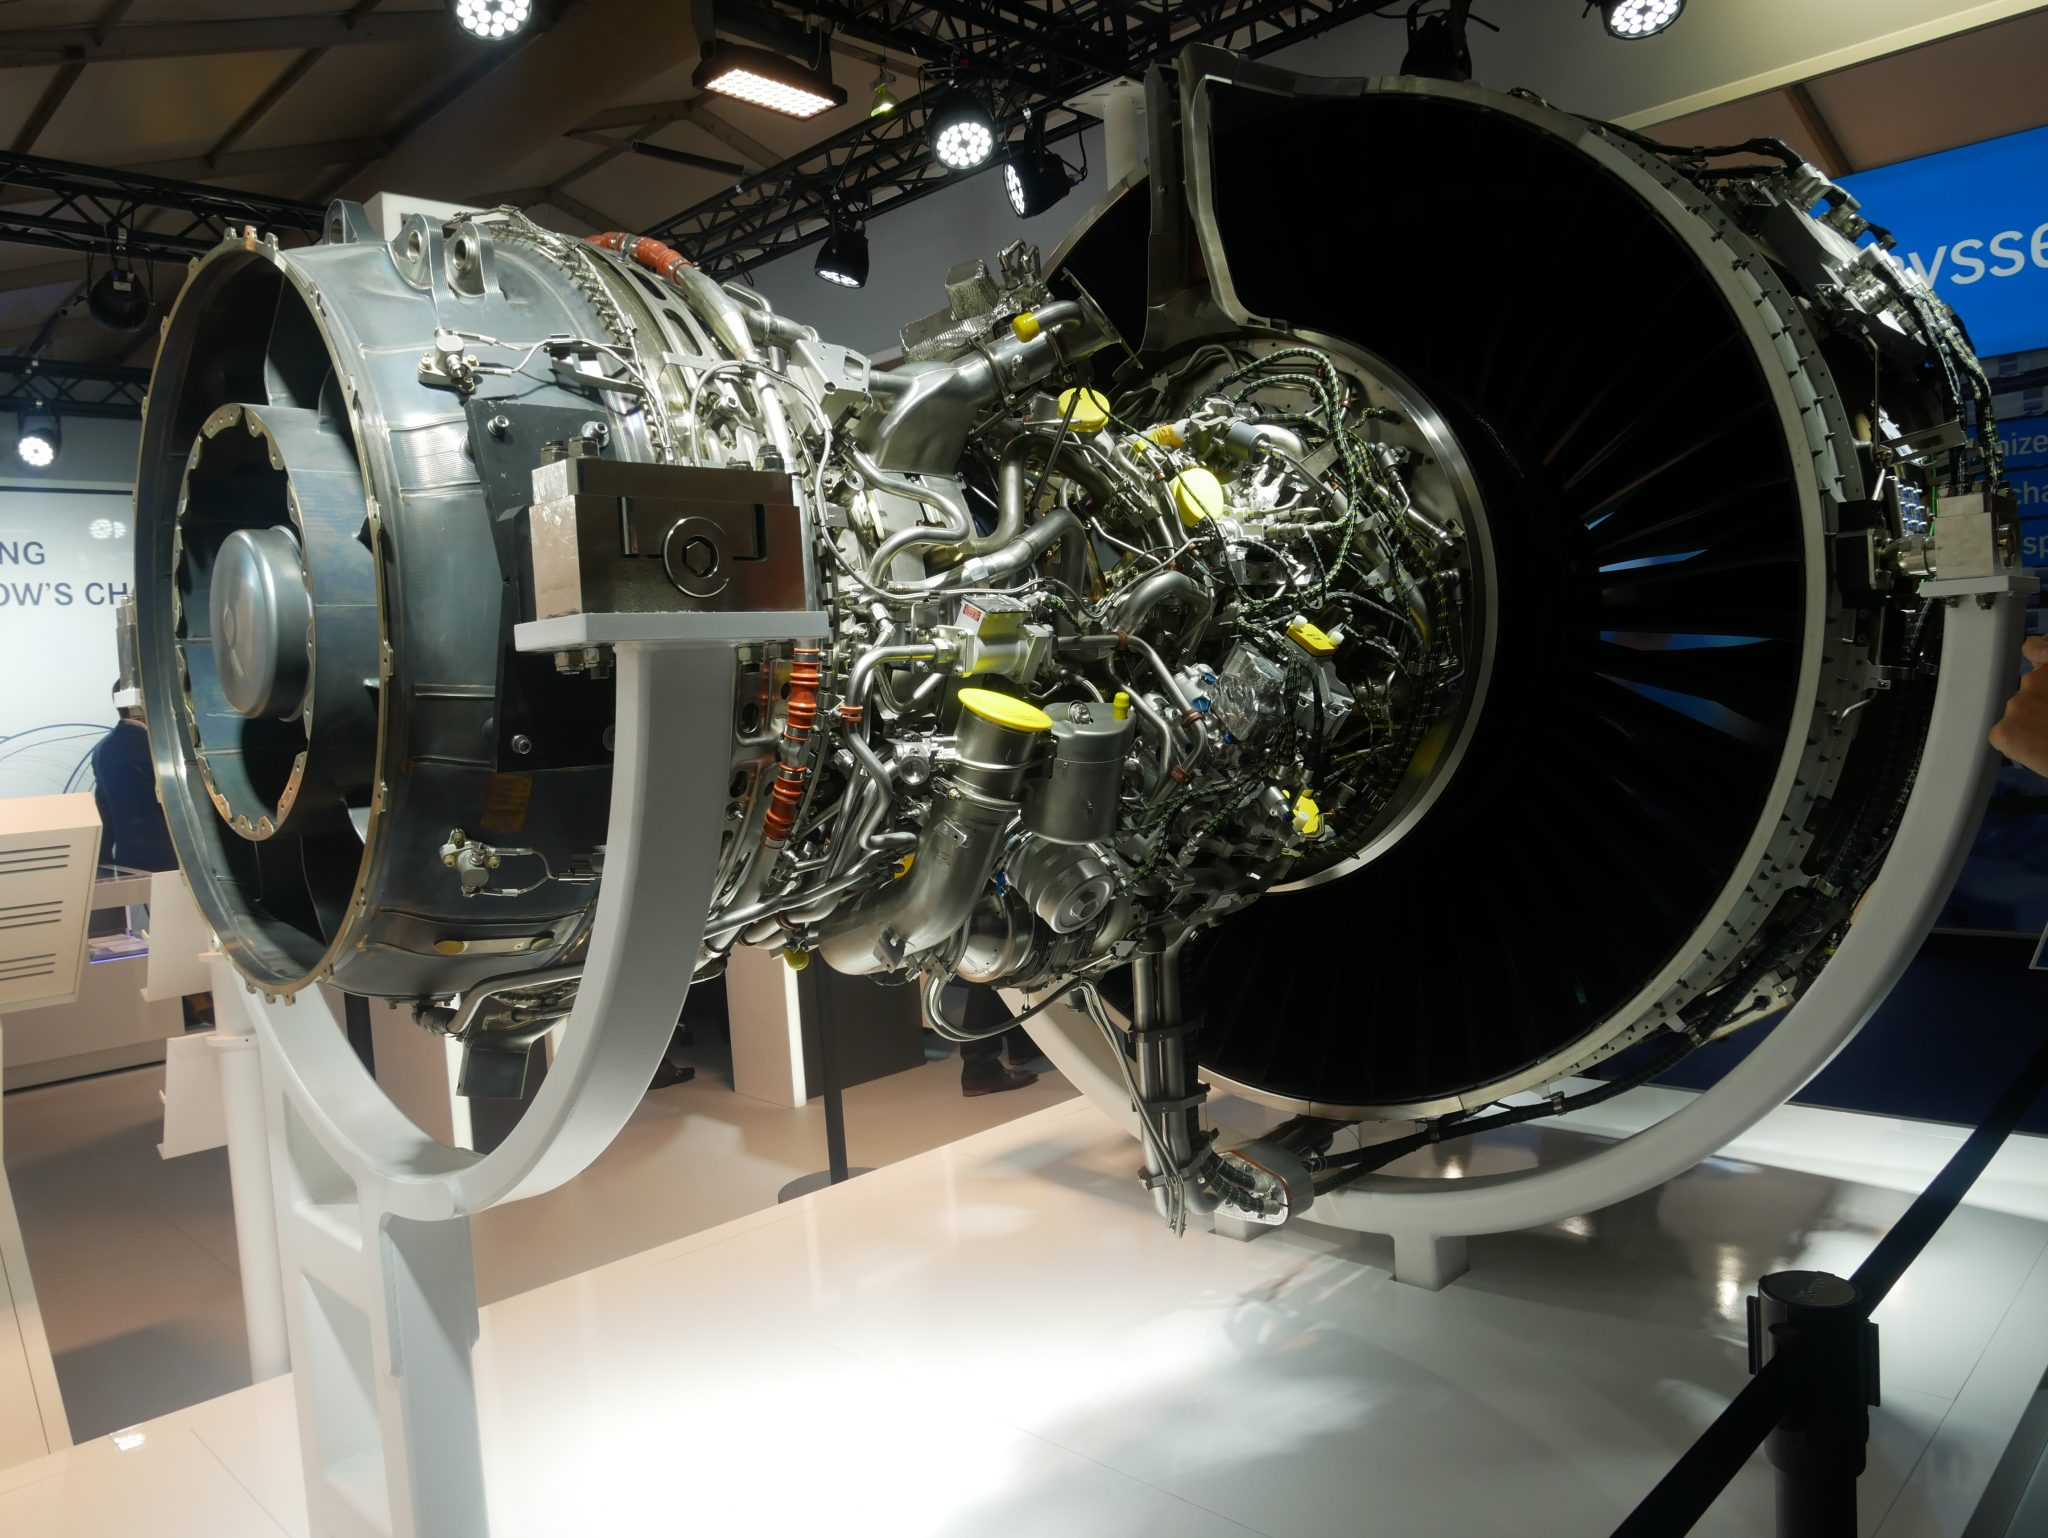 The Pratt & Whitney Geared Turbofan PW1000G aircraft engine, complete with additively manufactured components. Photo via Tia Vialva.